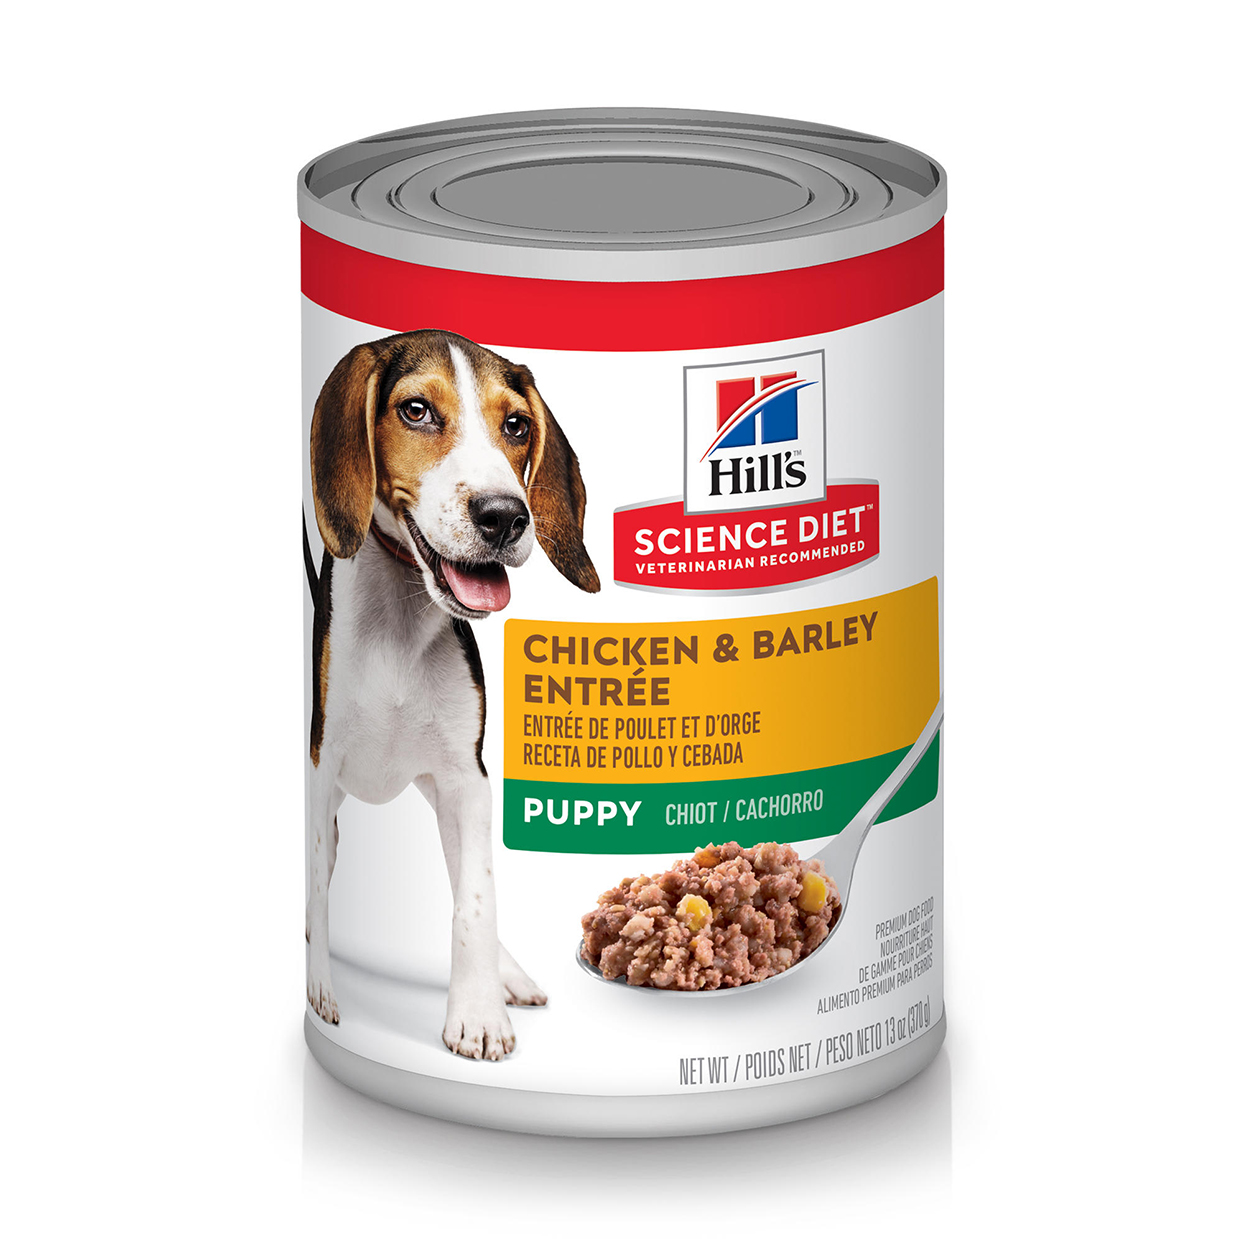 Hill's Science Diet Puppy Chicken & Barley Entree Canned Dog Food